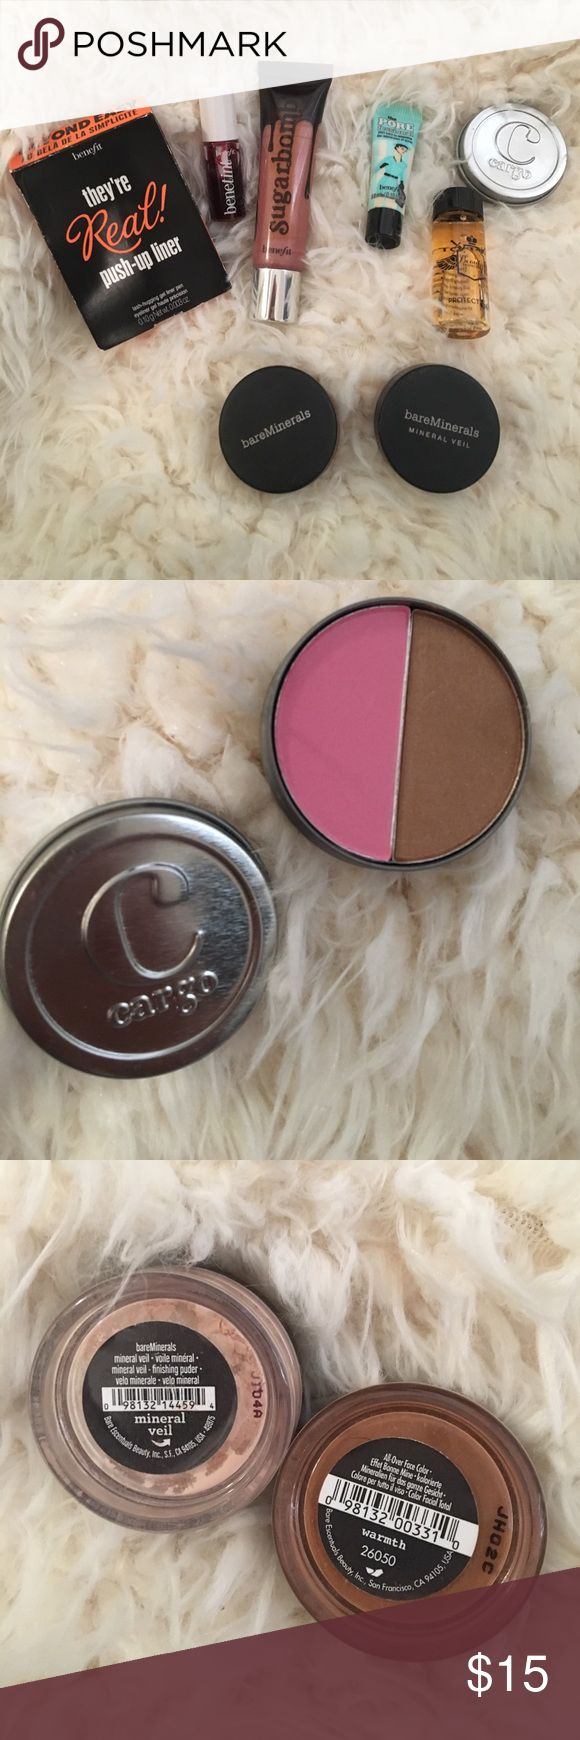 """SALE! Benefit And bare minerals Bundle! Great bundle of some trial / travel size items, mostly from Benefit! Everything is NWOT except for two bare minerals items (""""warmth"""" powder for bronzing and lowlights and the mineral veil for highlighting), bare minerals powders used 1-2 times each. Bundle includes: Bare Minerals warmth and mineral veil; benefit porefessional, eyeliner, benetint and sugar bomb lip gloss (all unused, brand new); cargo blush bronzer duo (unused in Catalina & Medium); and…"""